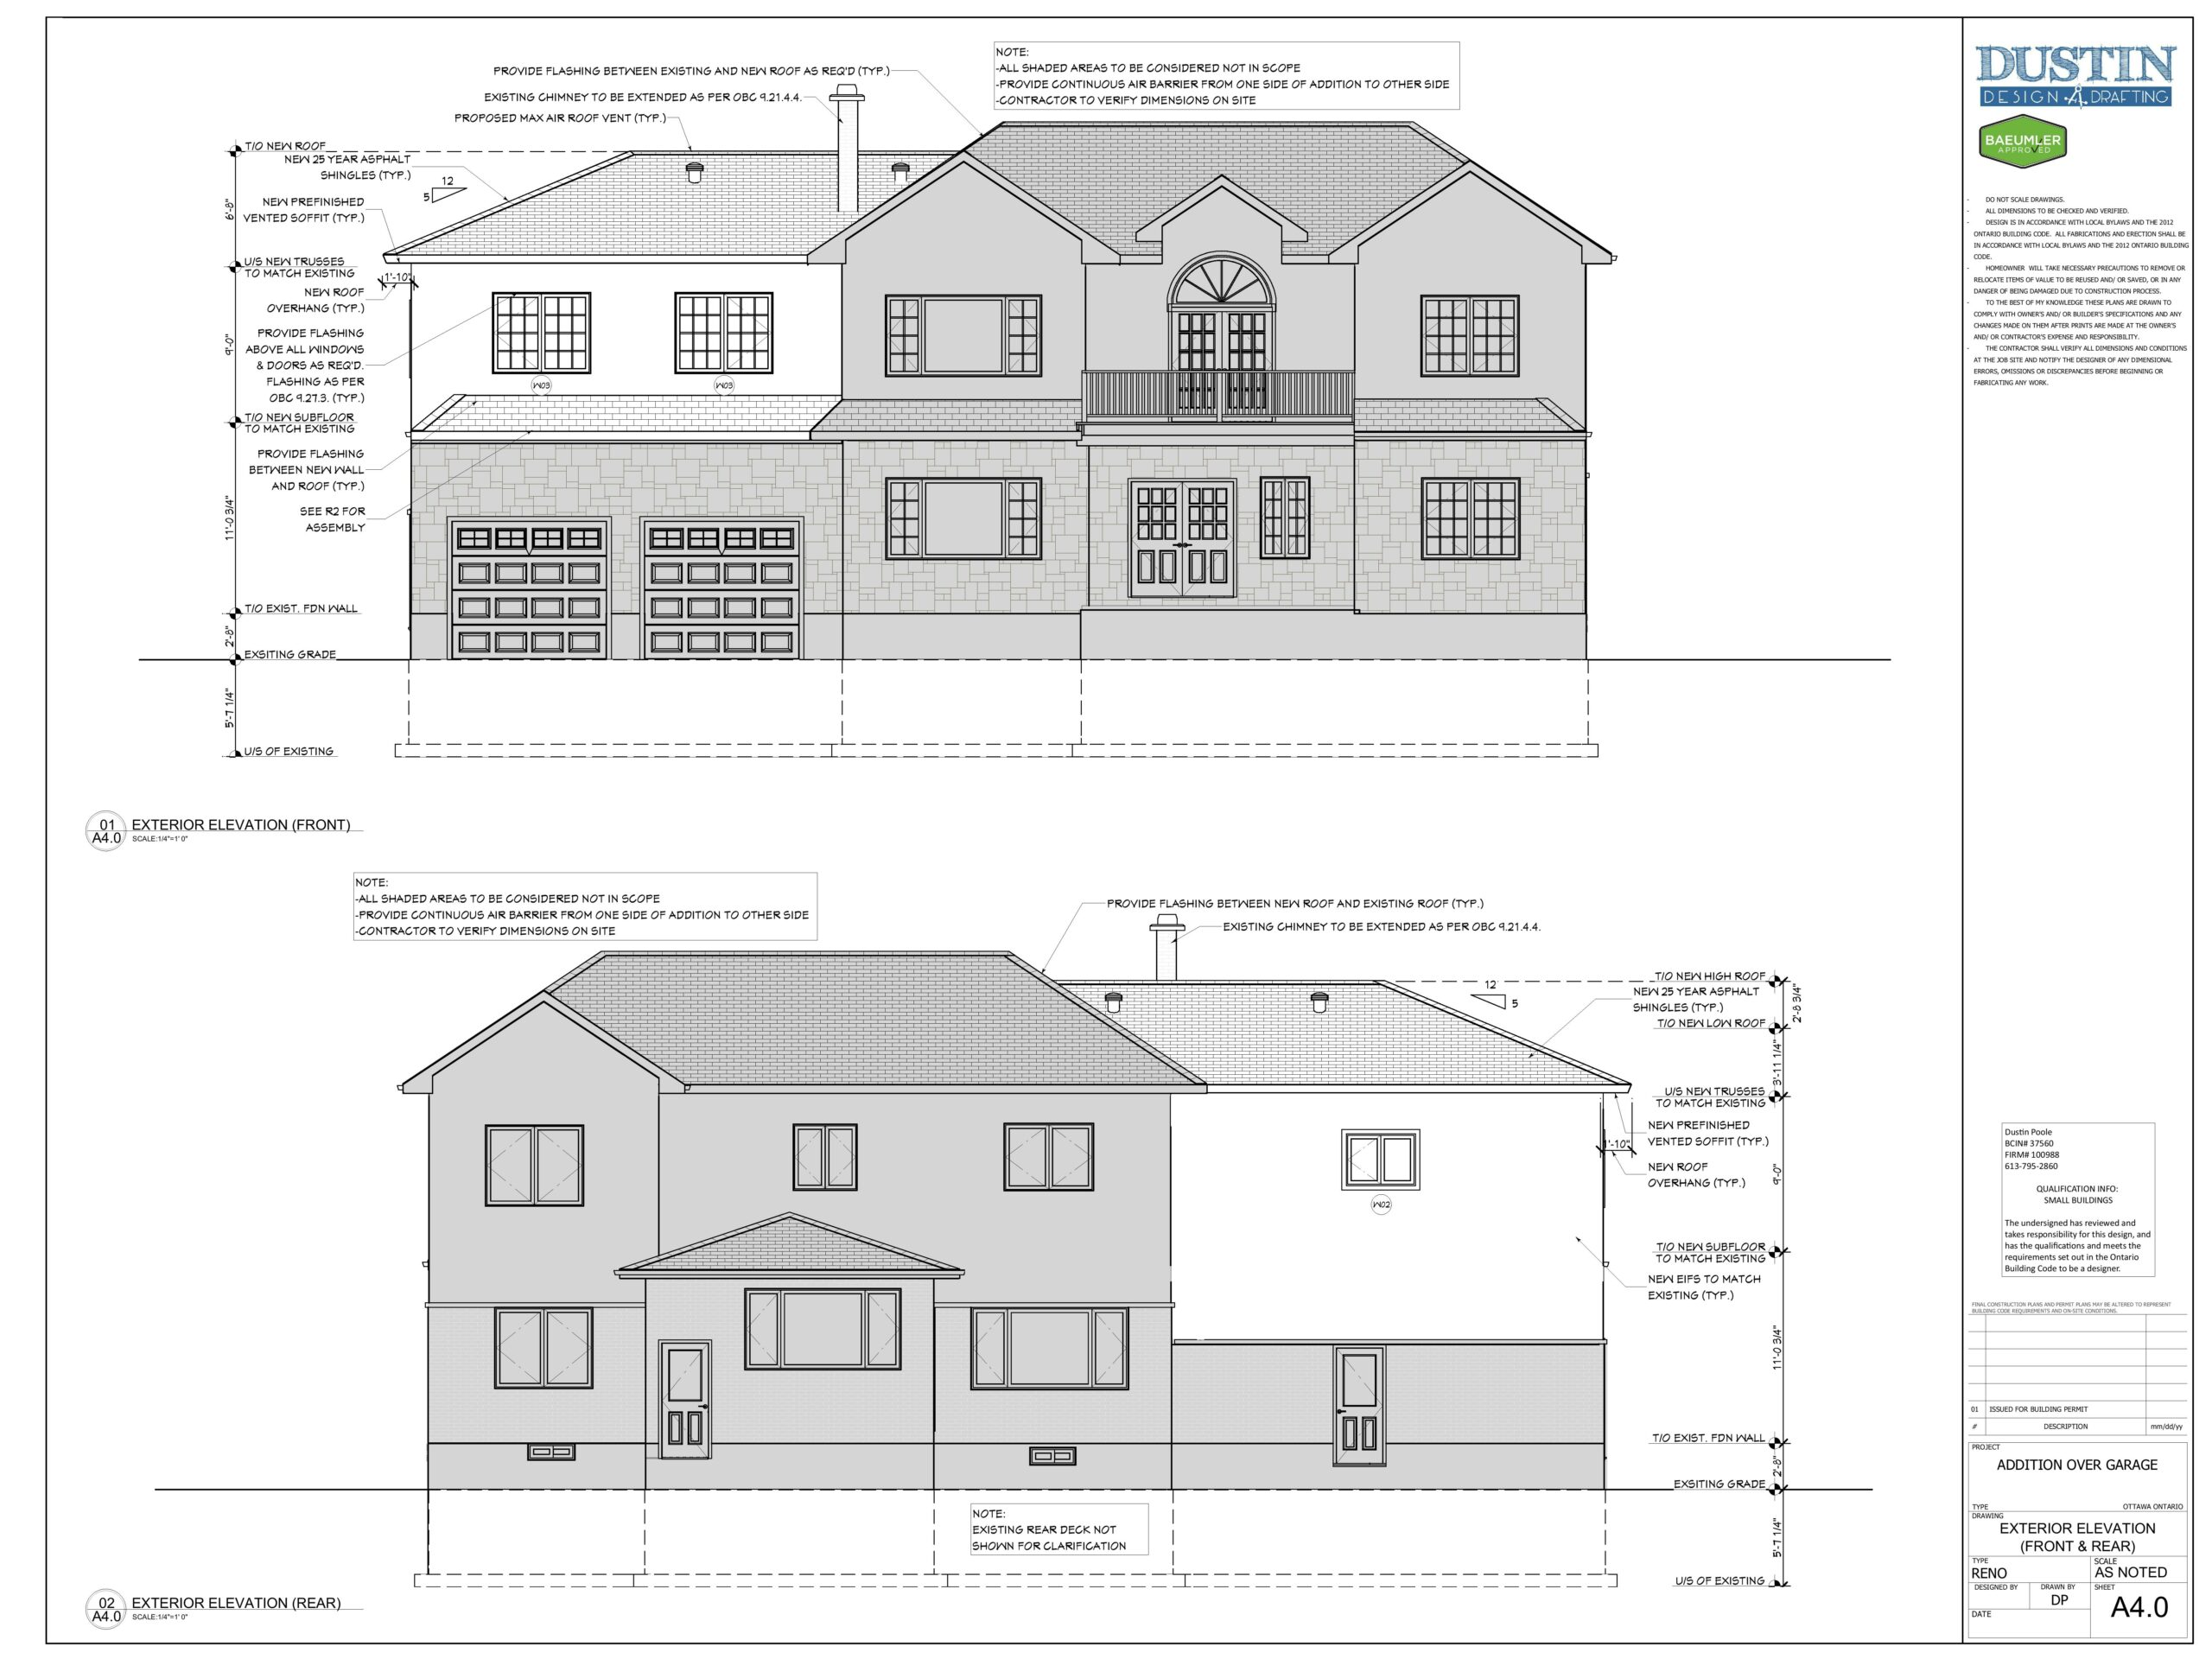 Addtion over garage - permit plans - Jan 12, 2020-page-010